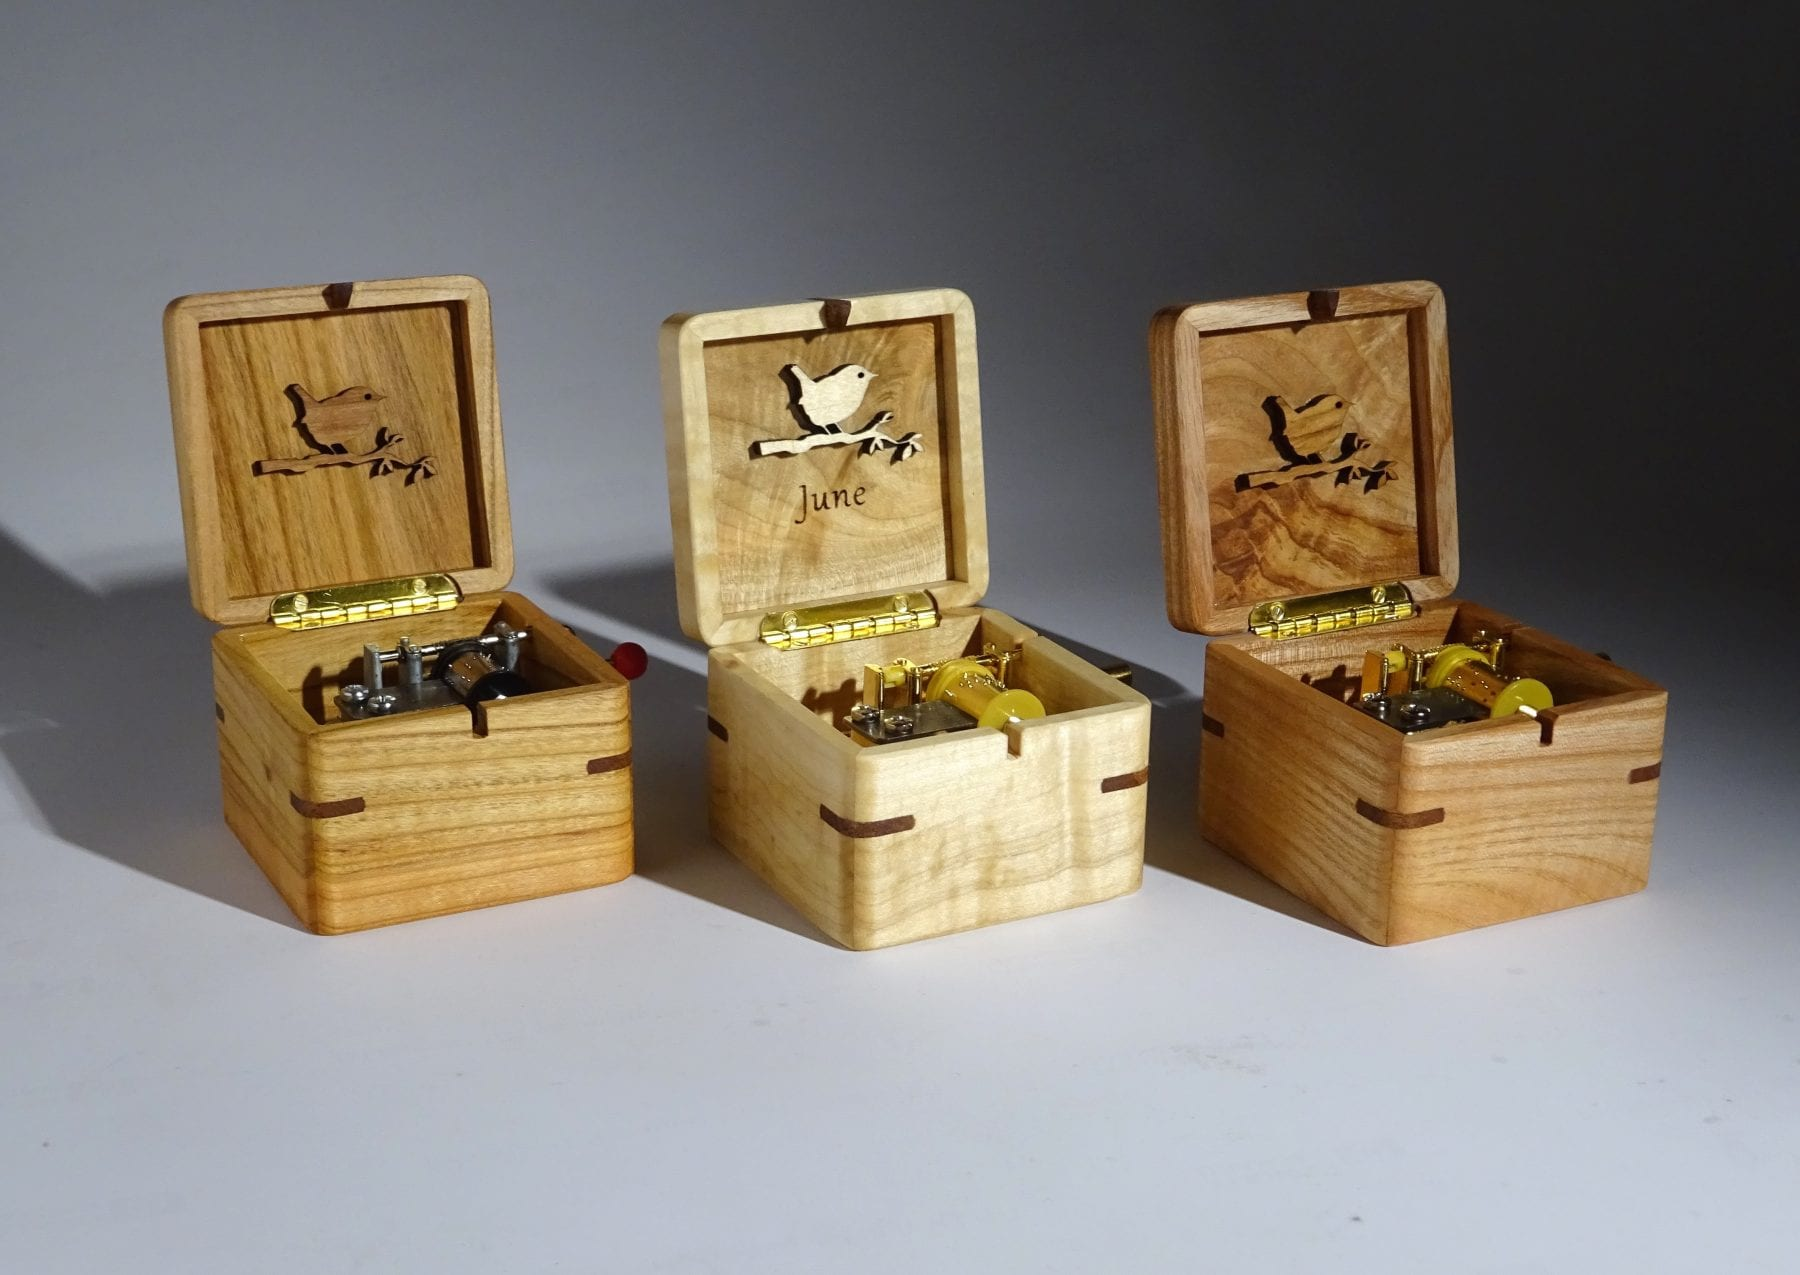 Music boxes made of wood